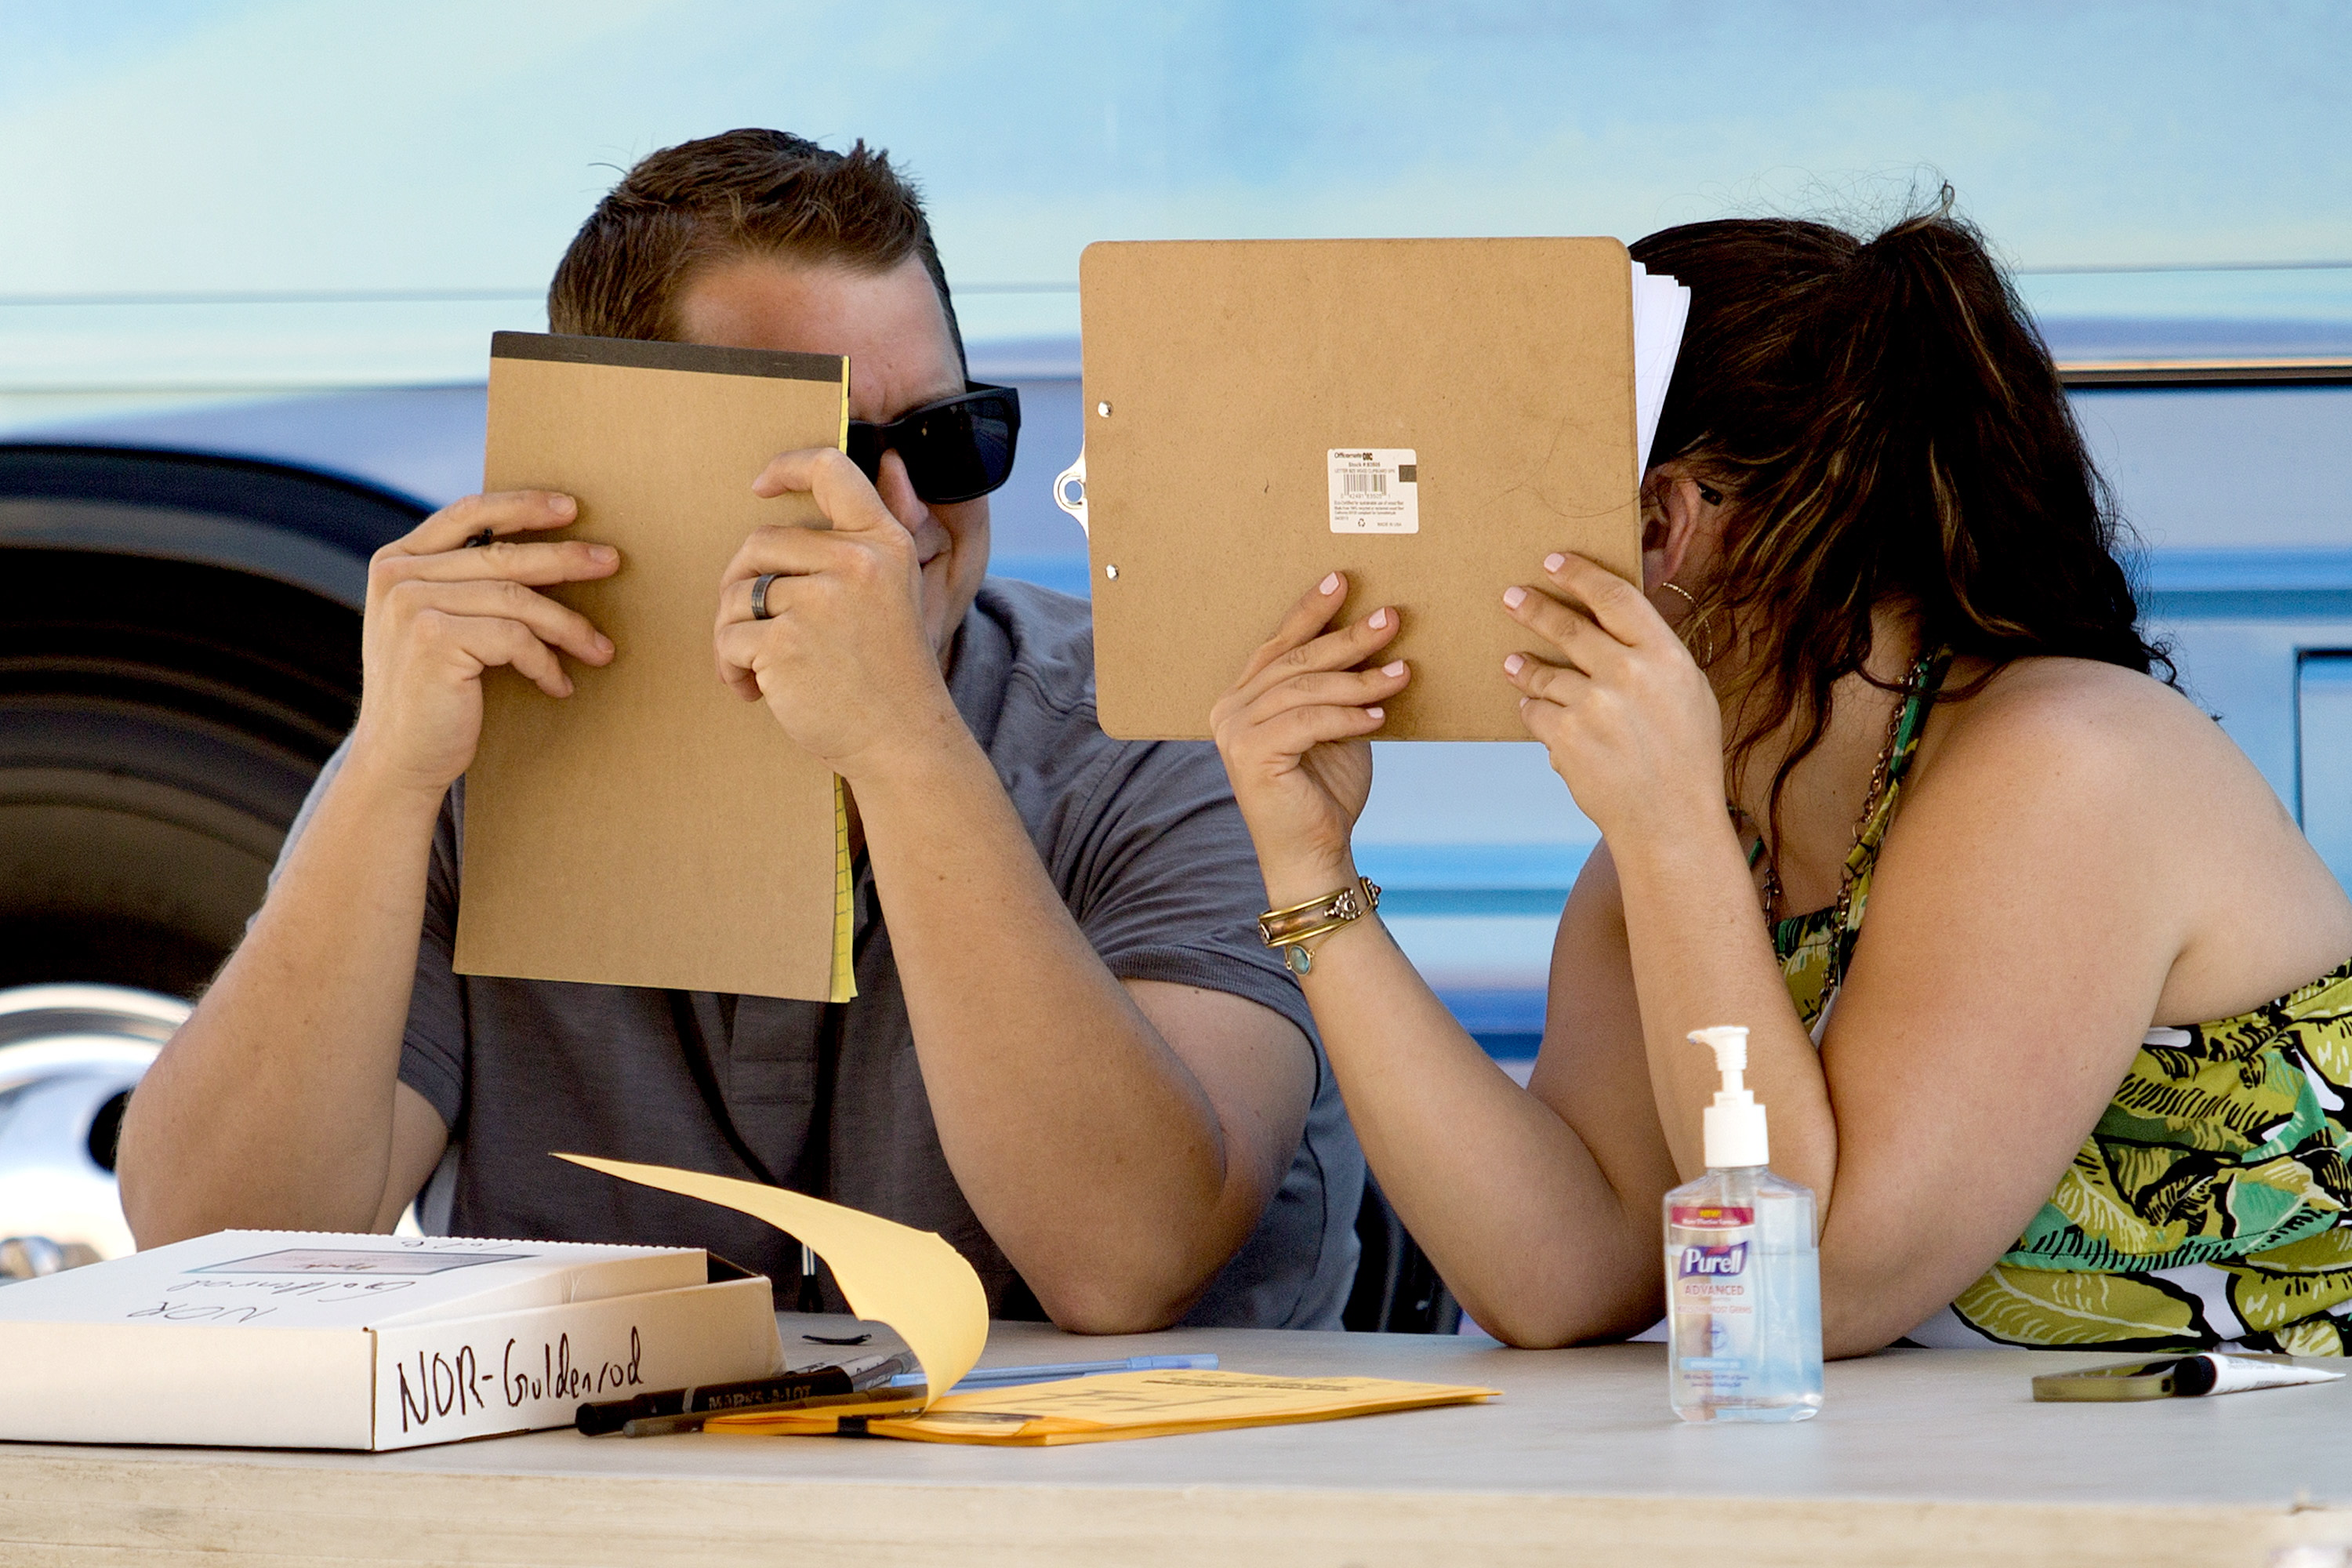 """Brian Robinson, a senior producer with """"American Idol,"""" and Nancy Yearing of 19 Entertainment, converse behind clipboards and notepads as they talk about whether or not a person who auditioned for the show made the first cut at the Maine State Pier on Wednesday."""